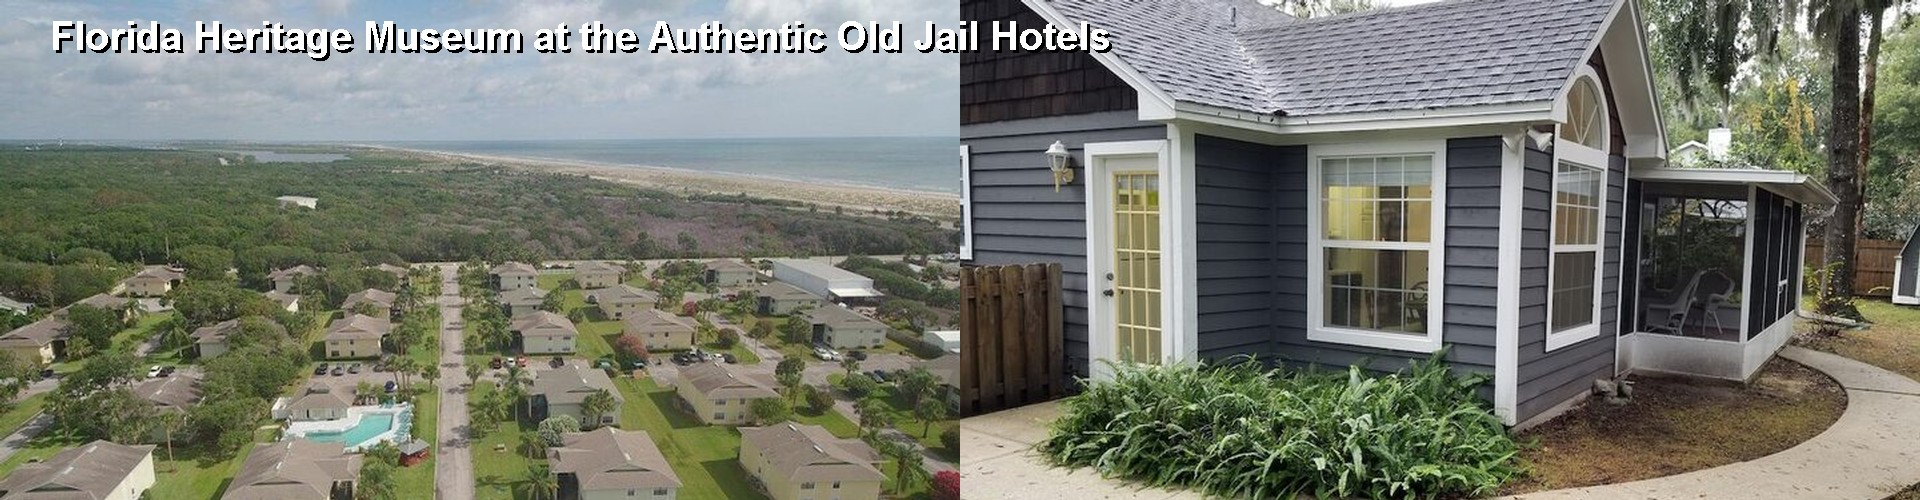 5 Best Hotels near Florida Heritage Museum at the Authentic Old Jail